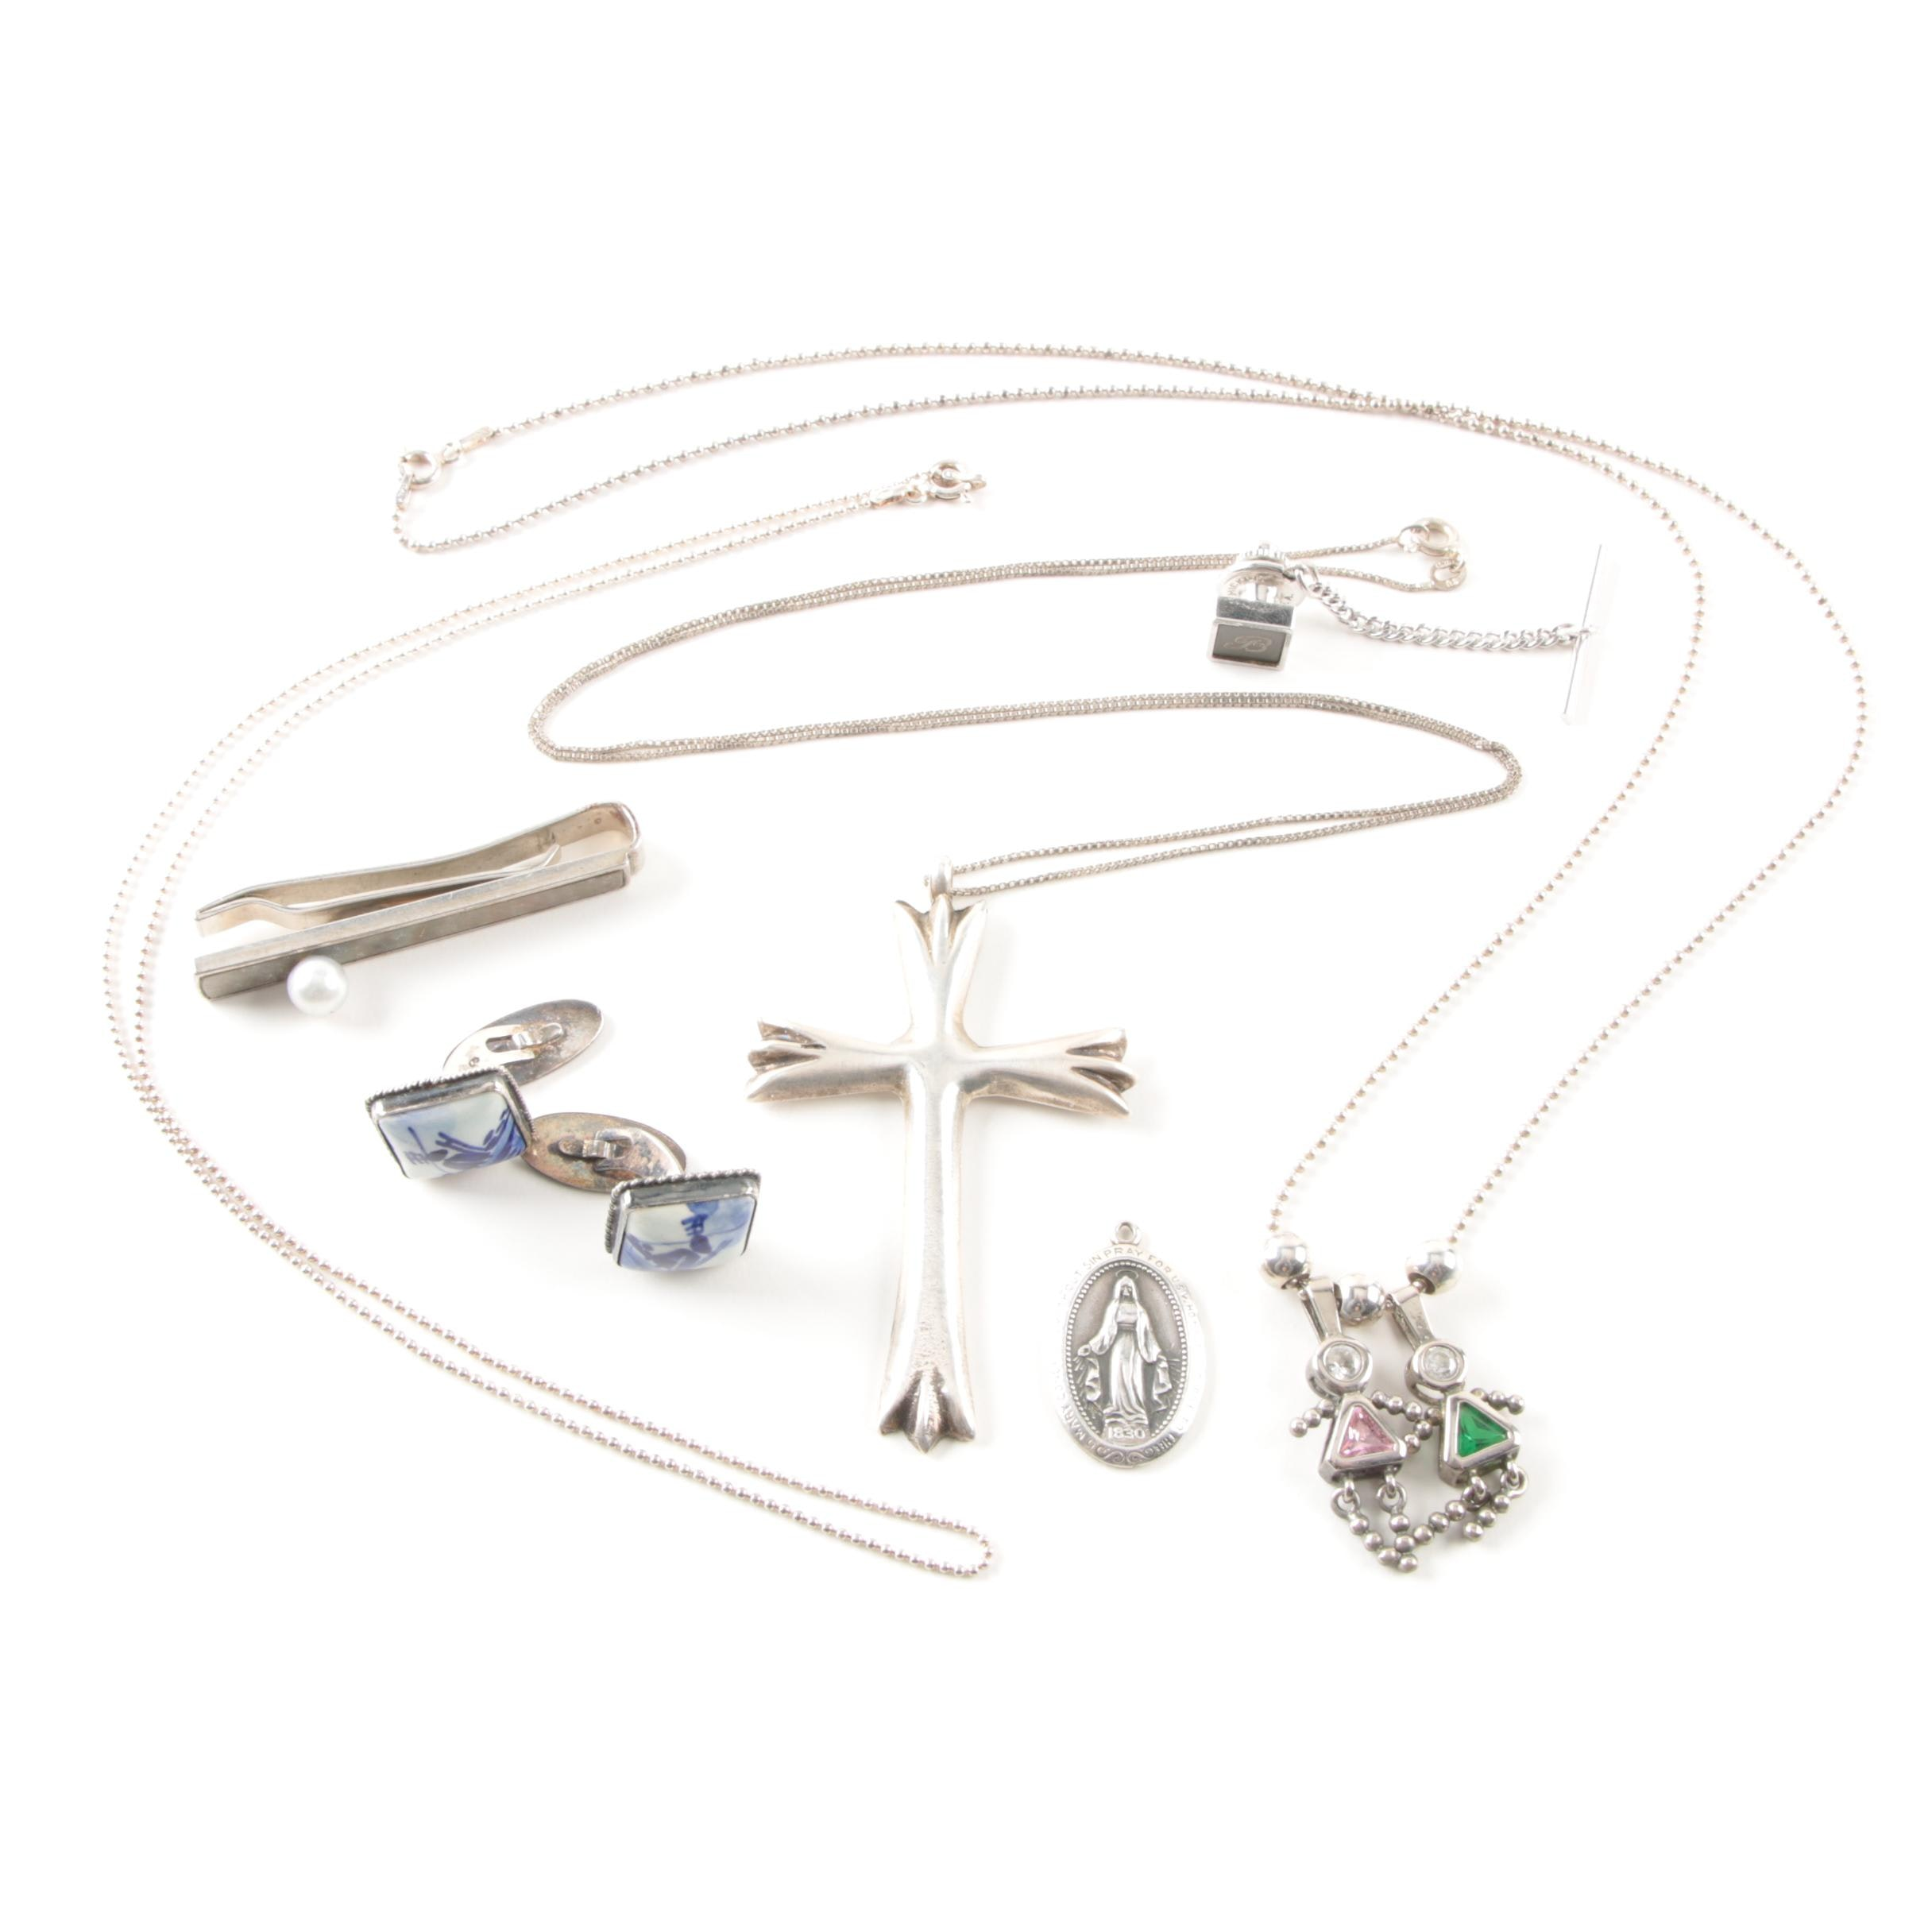 Sterling Silver Jewelry with Accents